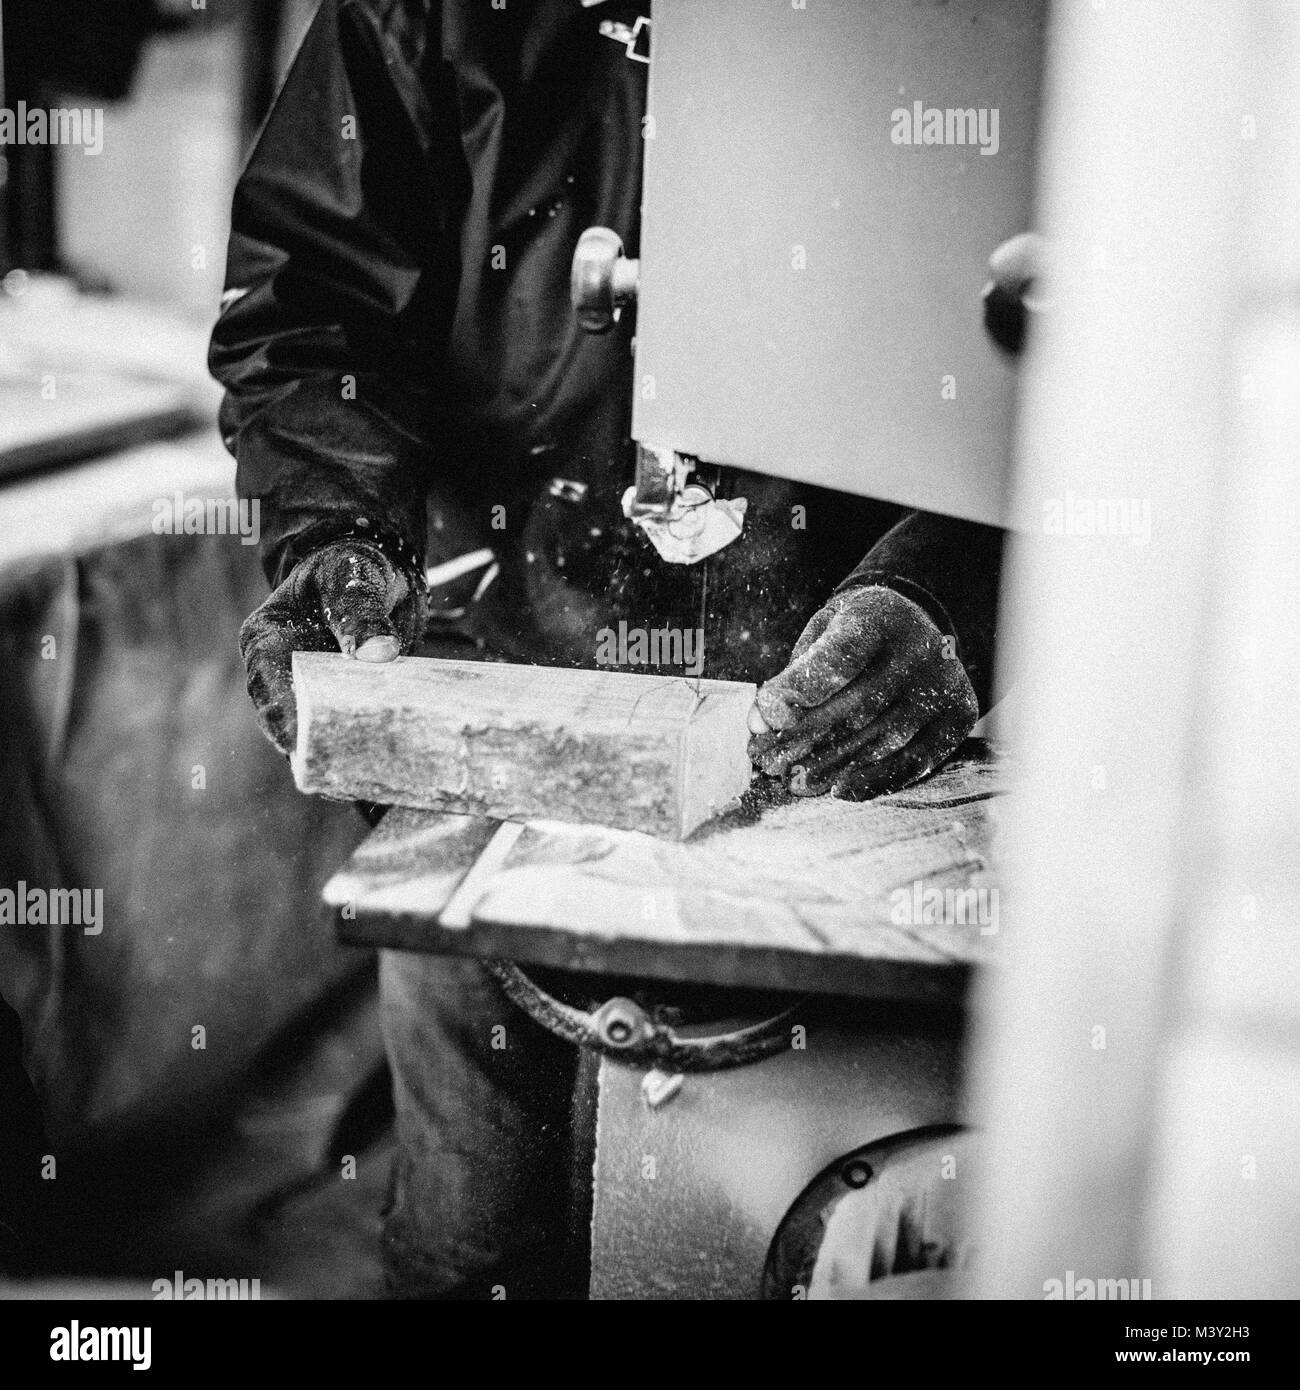 carpenter at work in his atelier works wood by creating objects - Stock Image